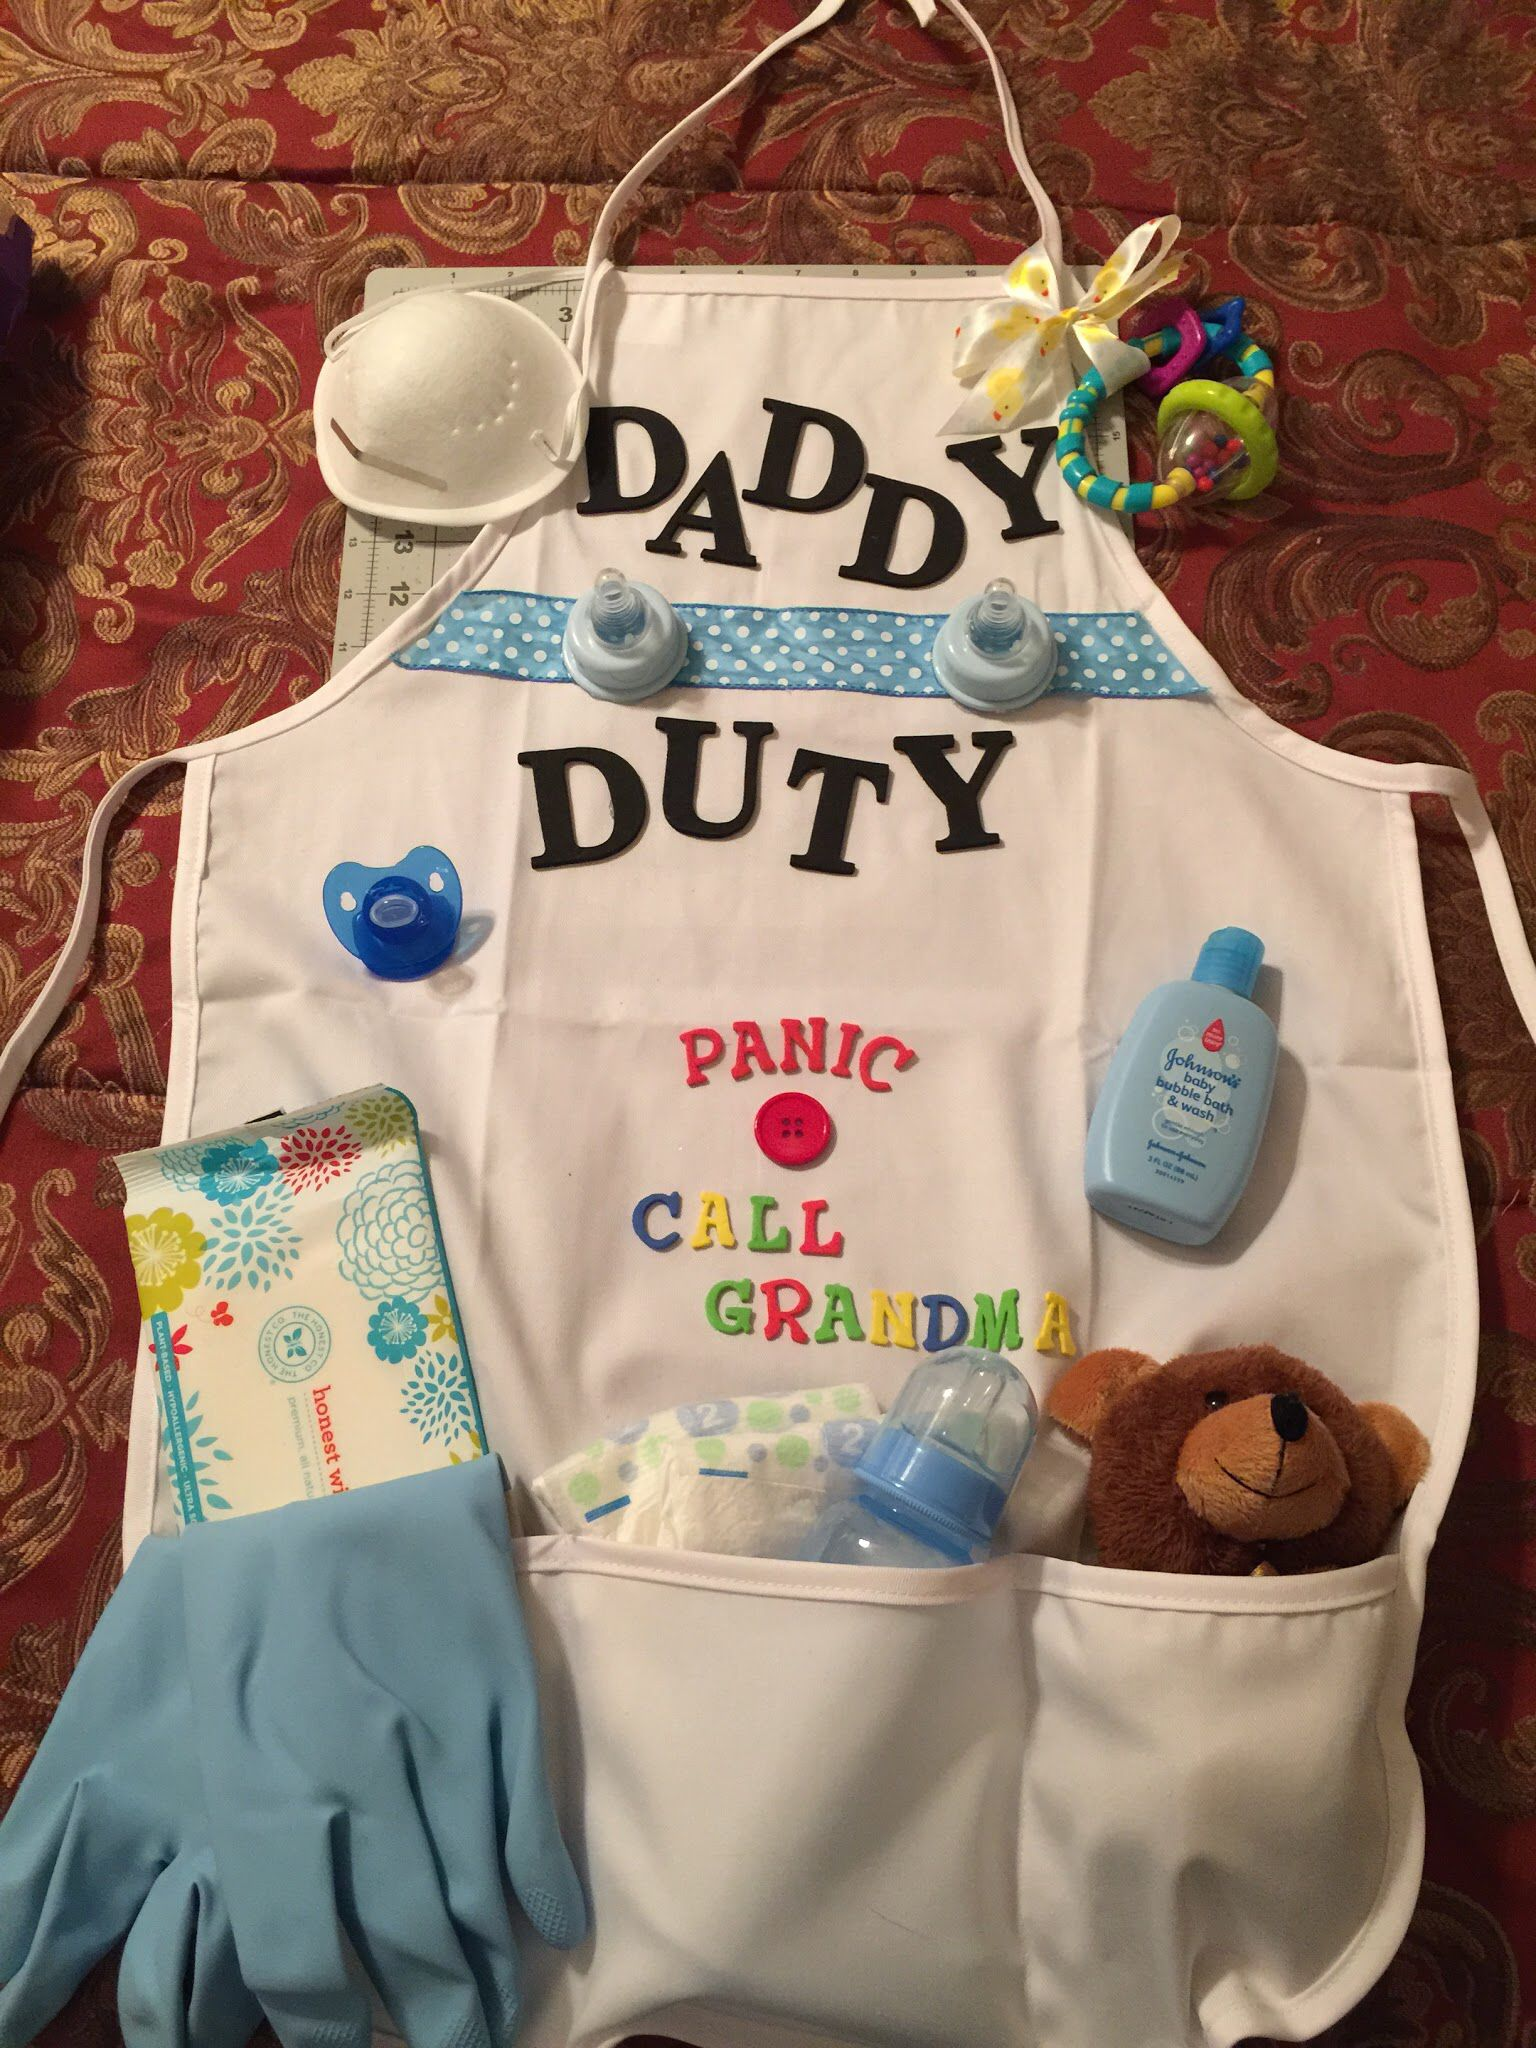 New Dad Diaper Duty apron